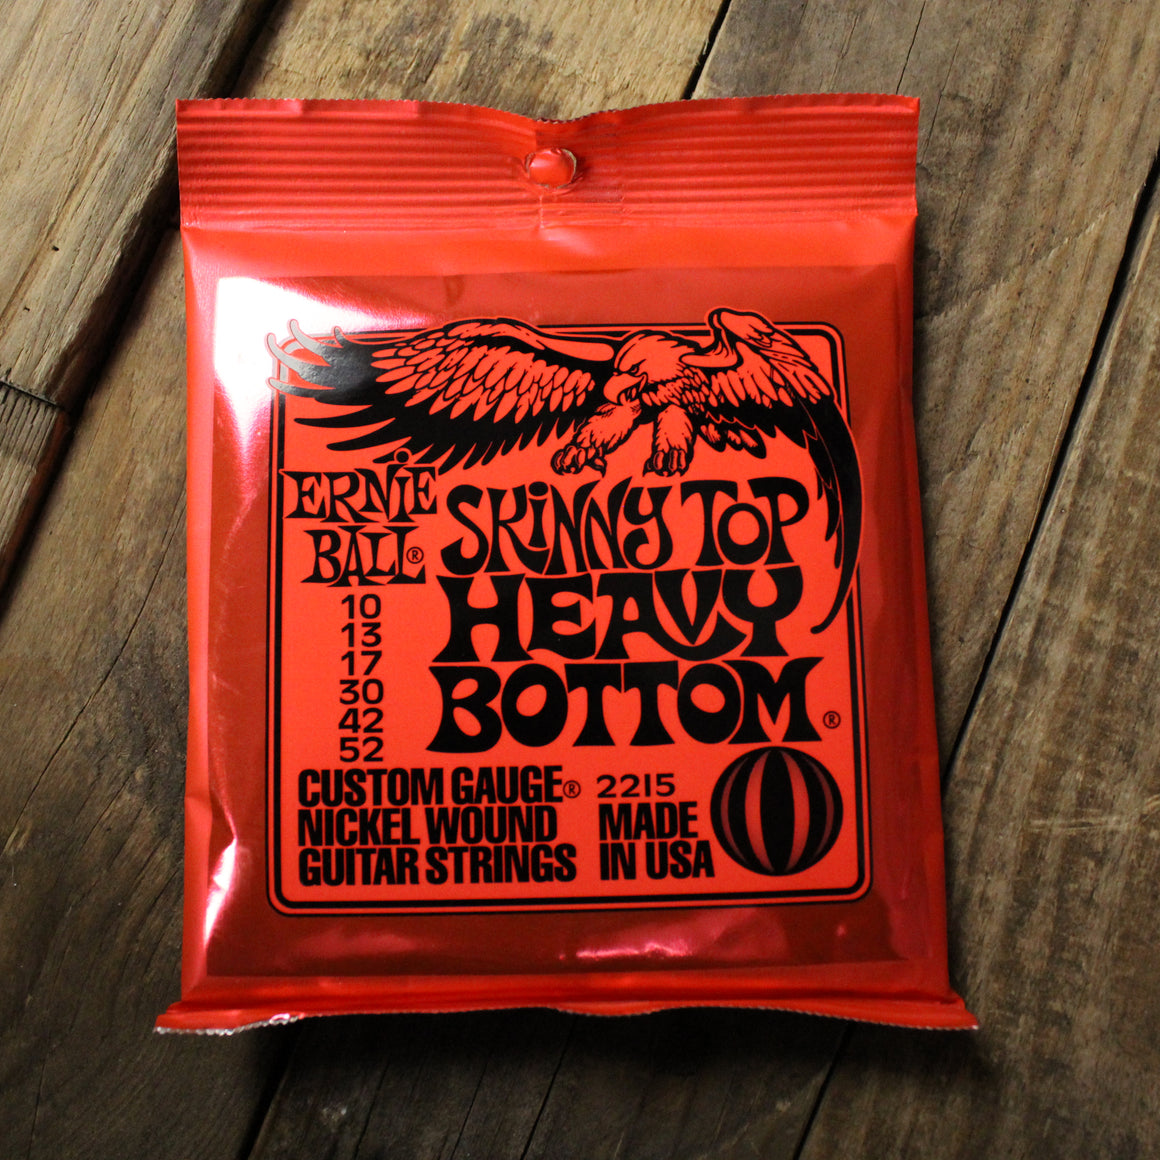 Ernie Ball Skinny Top Heavy Bottom Electric Guitar Strings